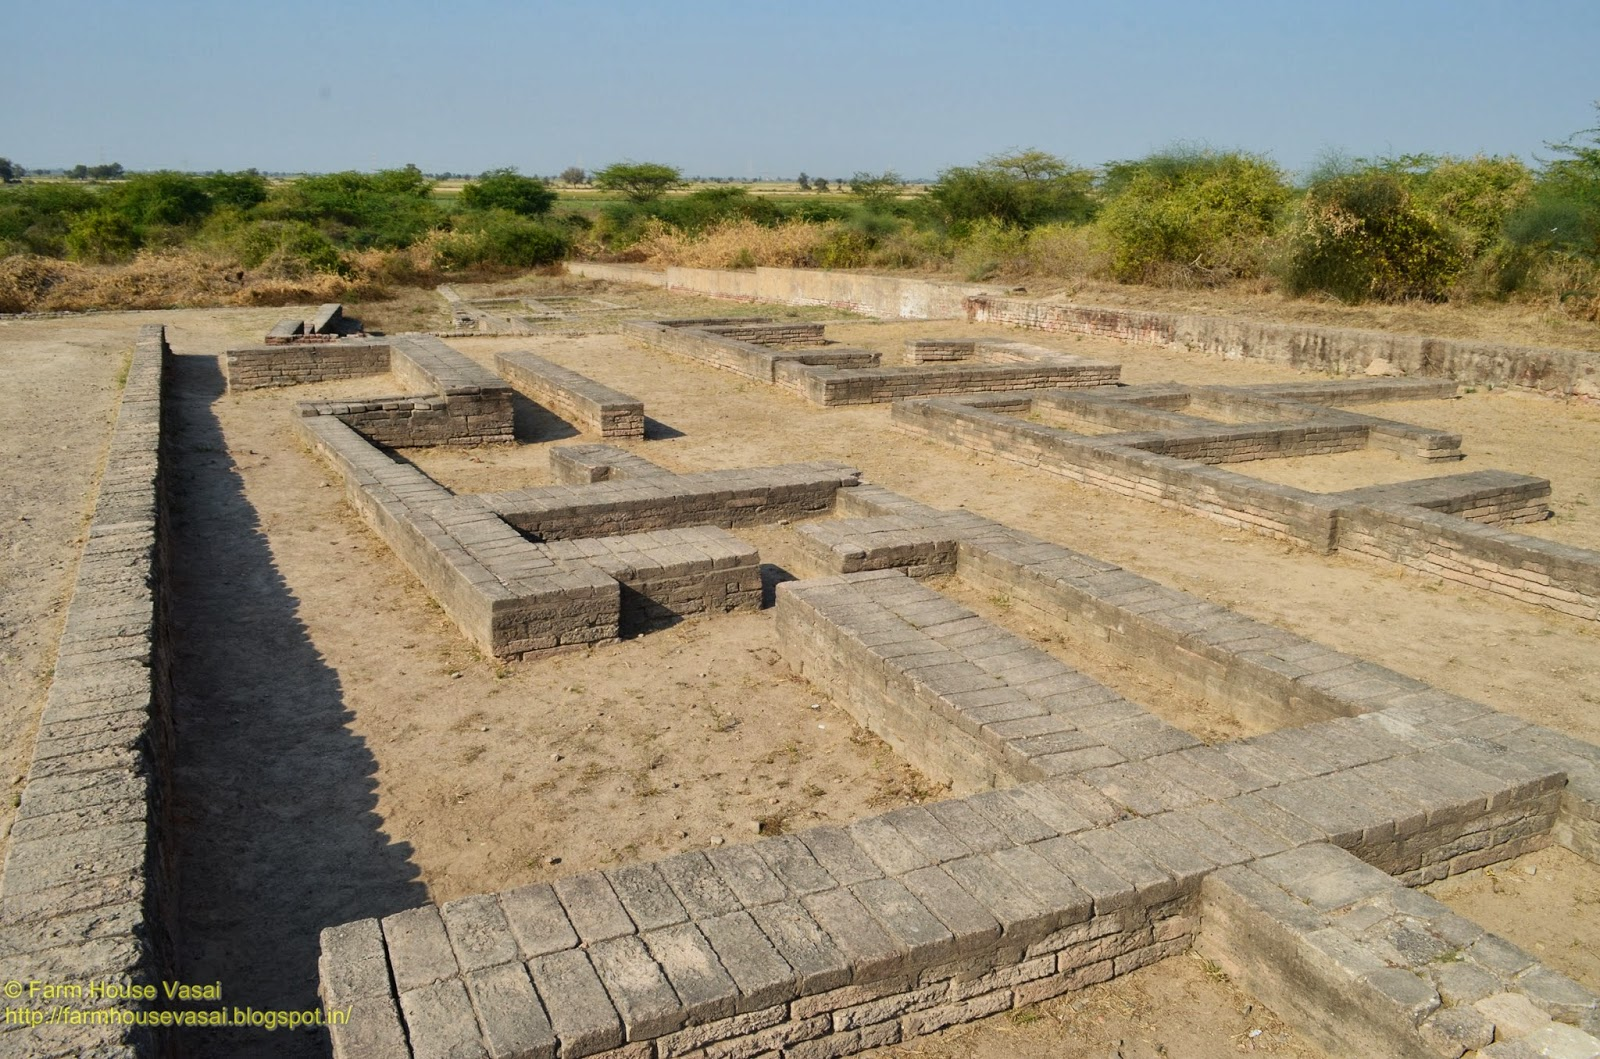 harappan civilisation By dr vasant shinde introduction the identification of the harappan civilization in the twenties of the twentieth century was considered to be the most significant.